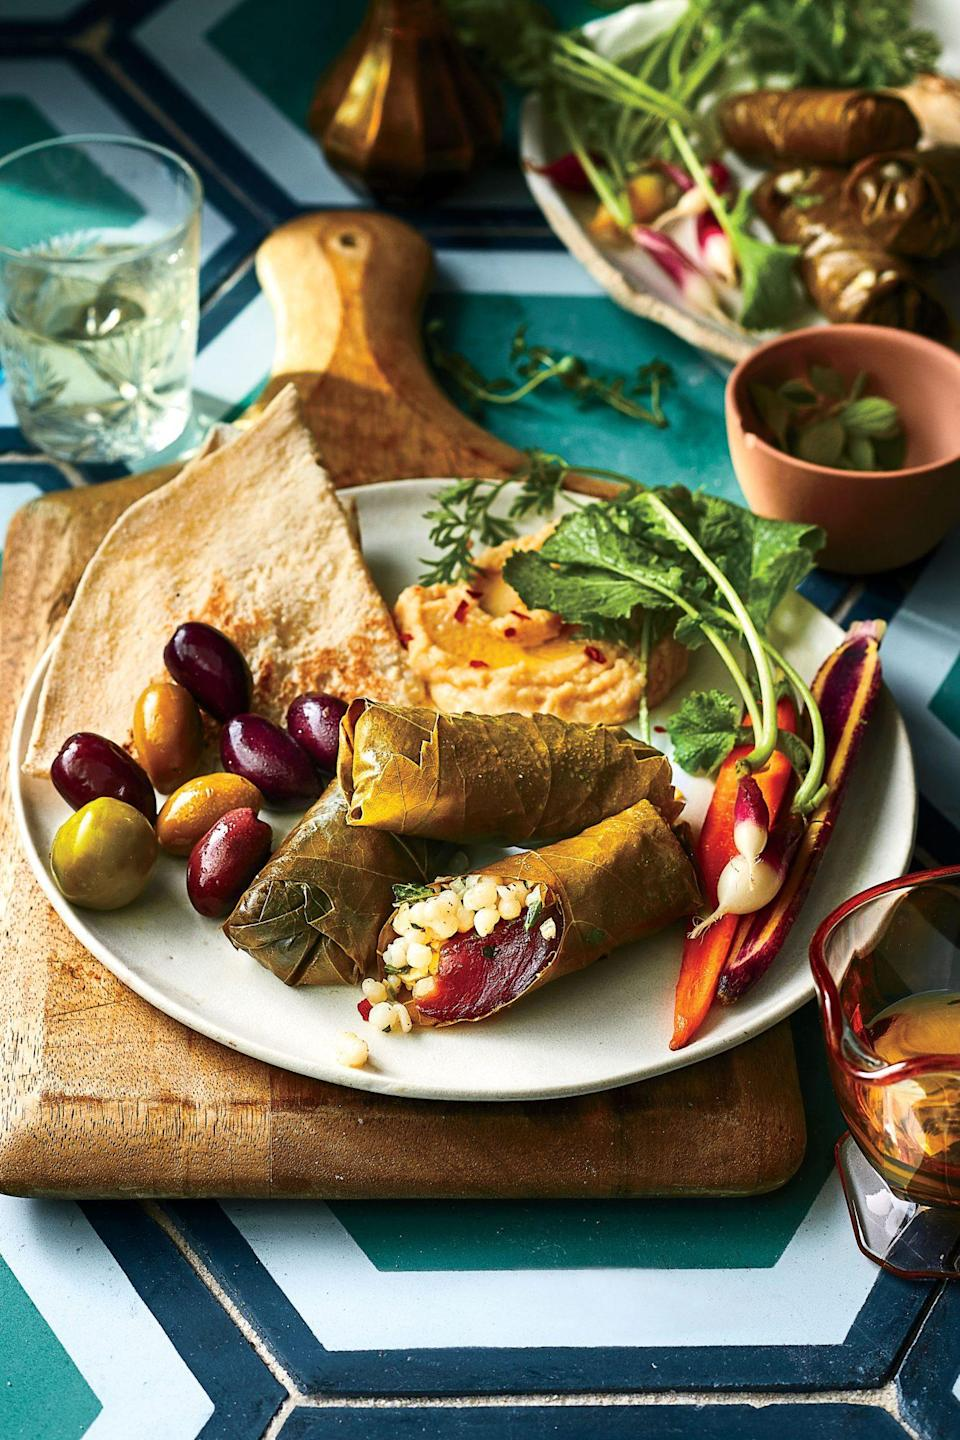 """<p>Our variation on dolmas (think Mediterranean spring rolls) bundles fresh tuna, crunchy peppers, and <a href=""""https://www.myrecipes.com/t/pasta/couscous"""" rel=""""nofollow noopener"""" target=""""_blank"""" data-ylk=""""slk:tender couscous"""" class=""""link rapid-noclick-resp"""">tender couscous</a> stuffed into tangy grape leaves. Remember to gently remove the leaf bundles (available at most Mediterranean markets, Whole Foods, or Trader Joe's locations) from their jar, being careful not to tear the leaves.</p>"""